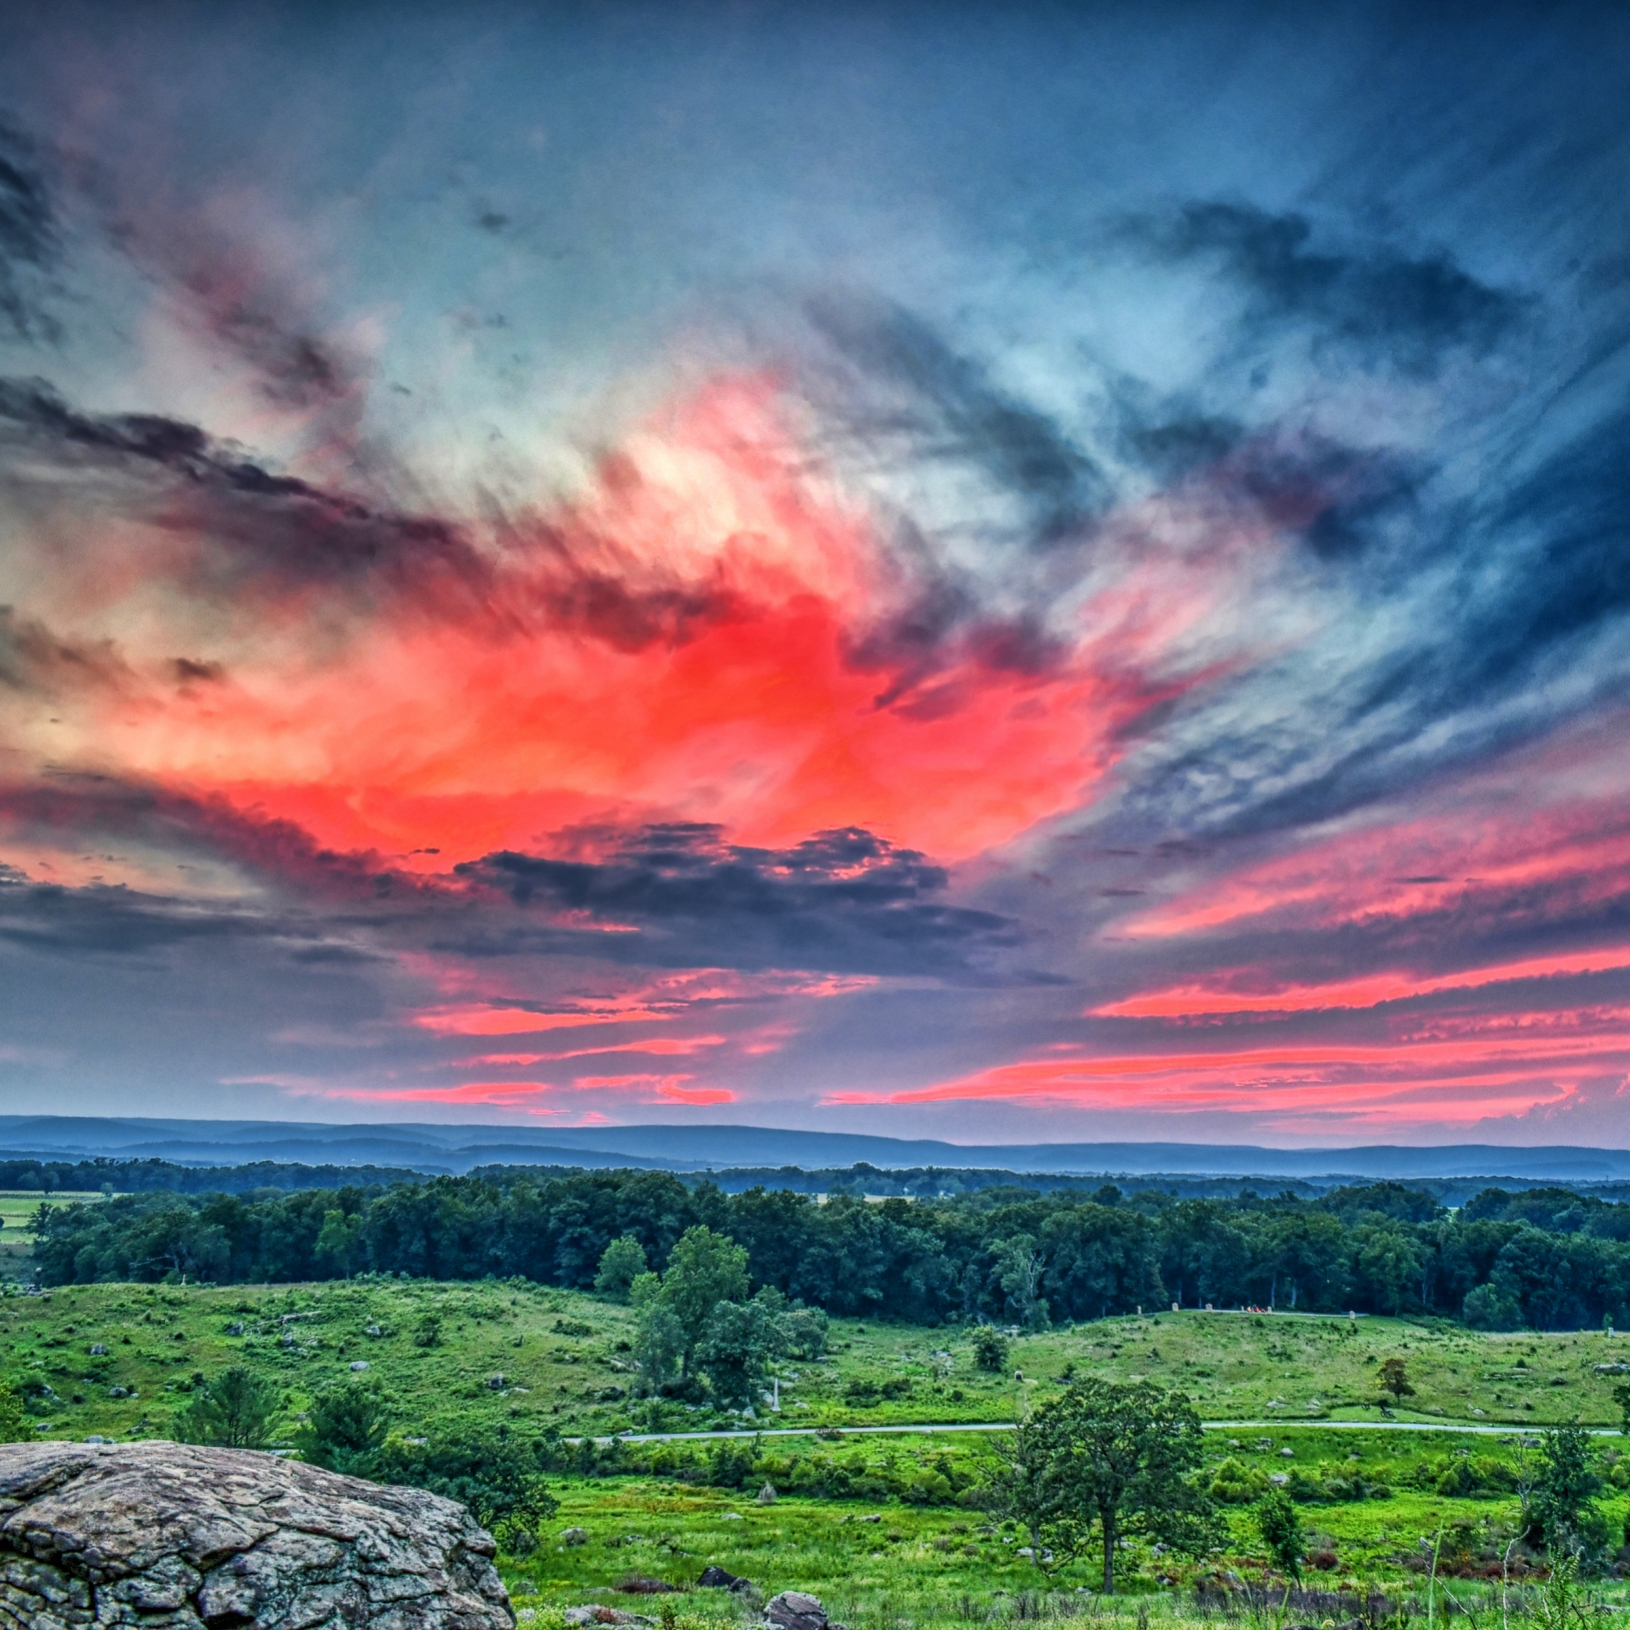 Another beautiful sunset take from Little Round Top.  The sky exploded with the bold, hot pinks, layered with the gray and blue coolness of dusk.